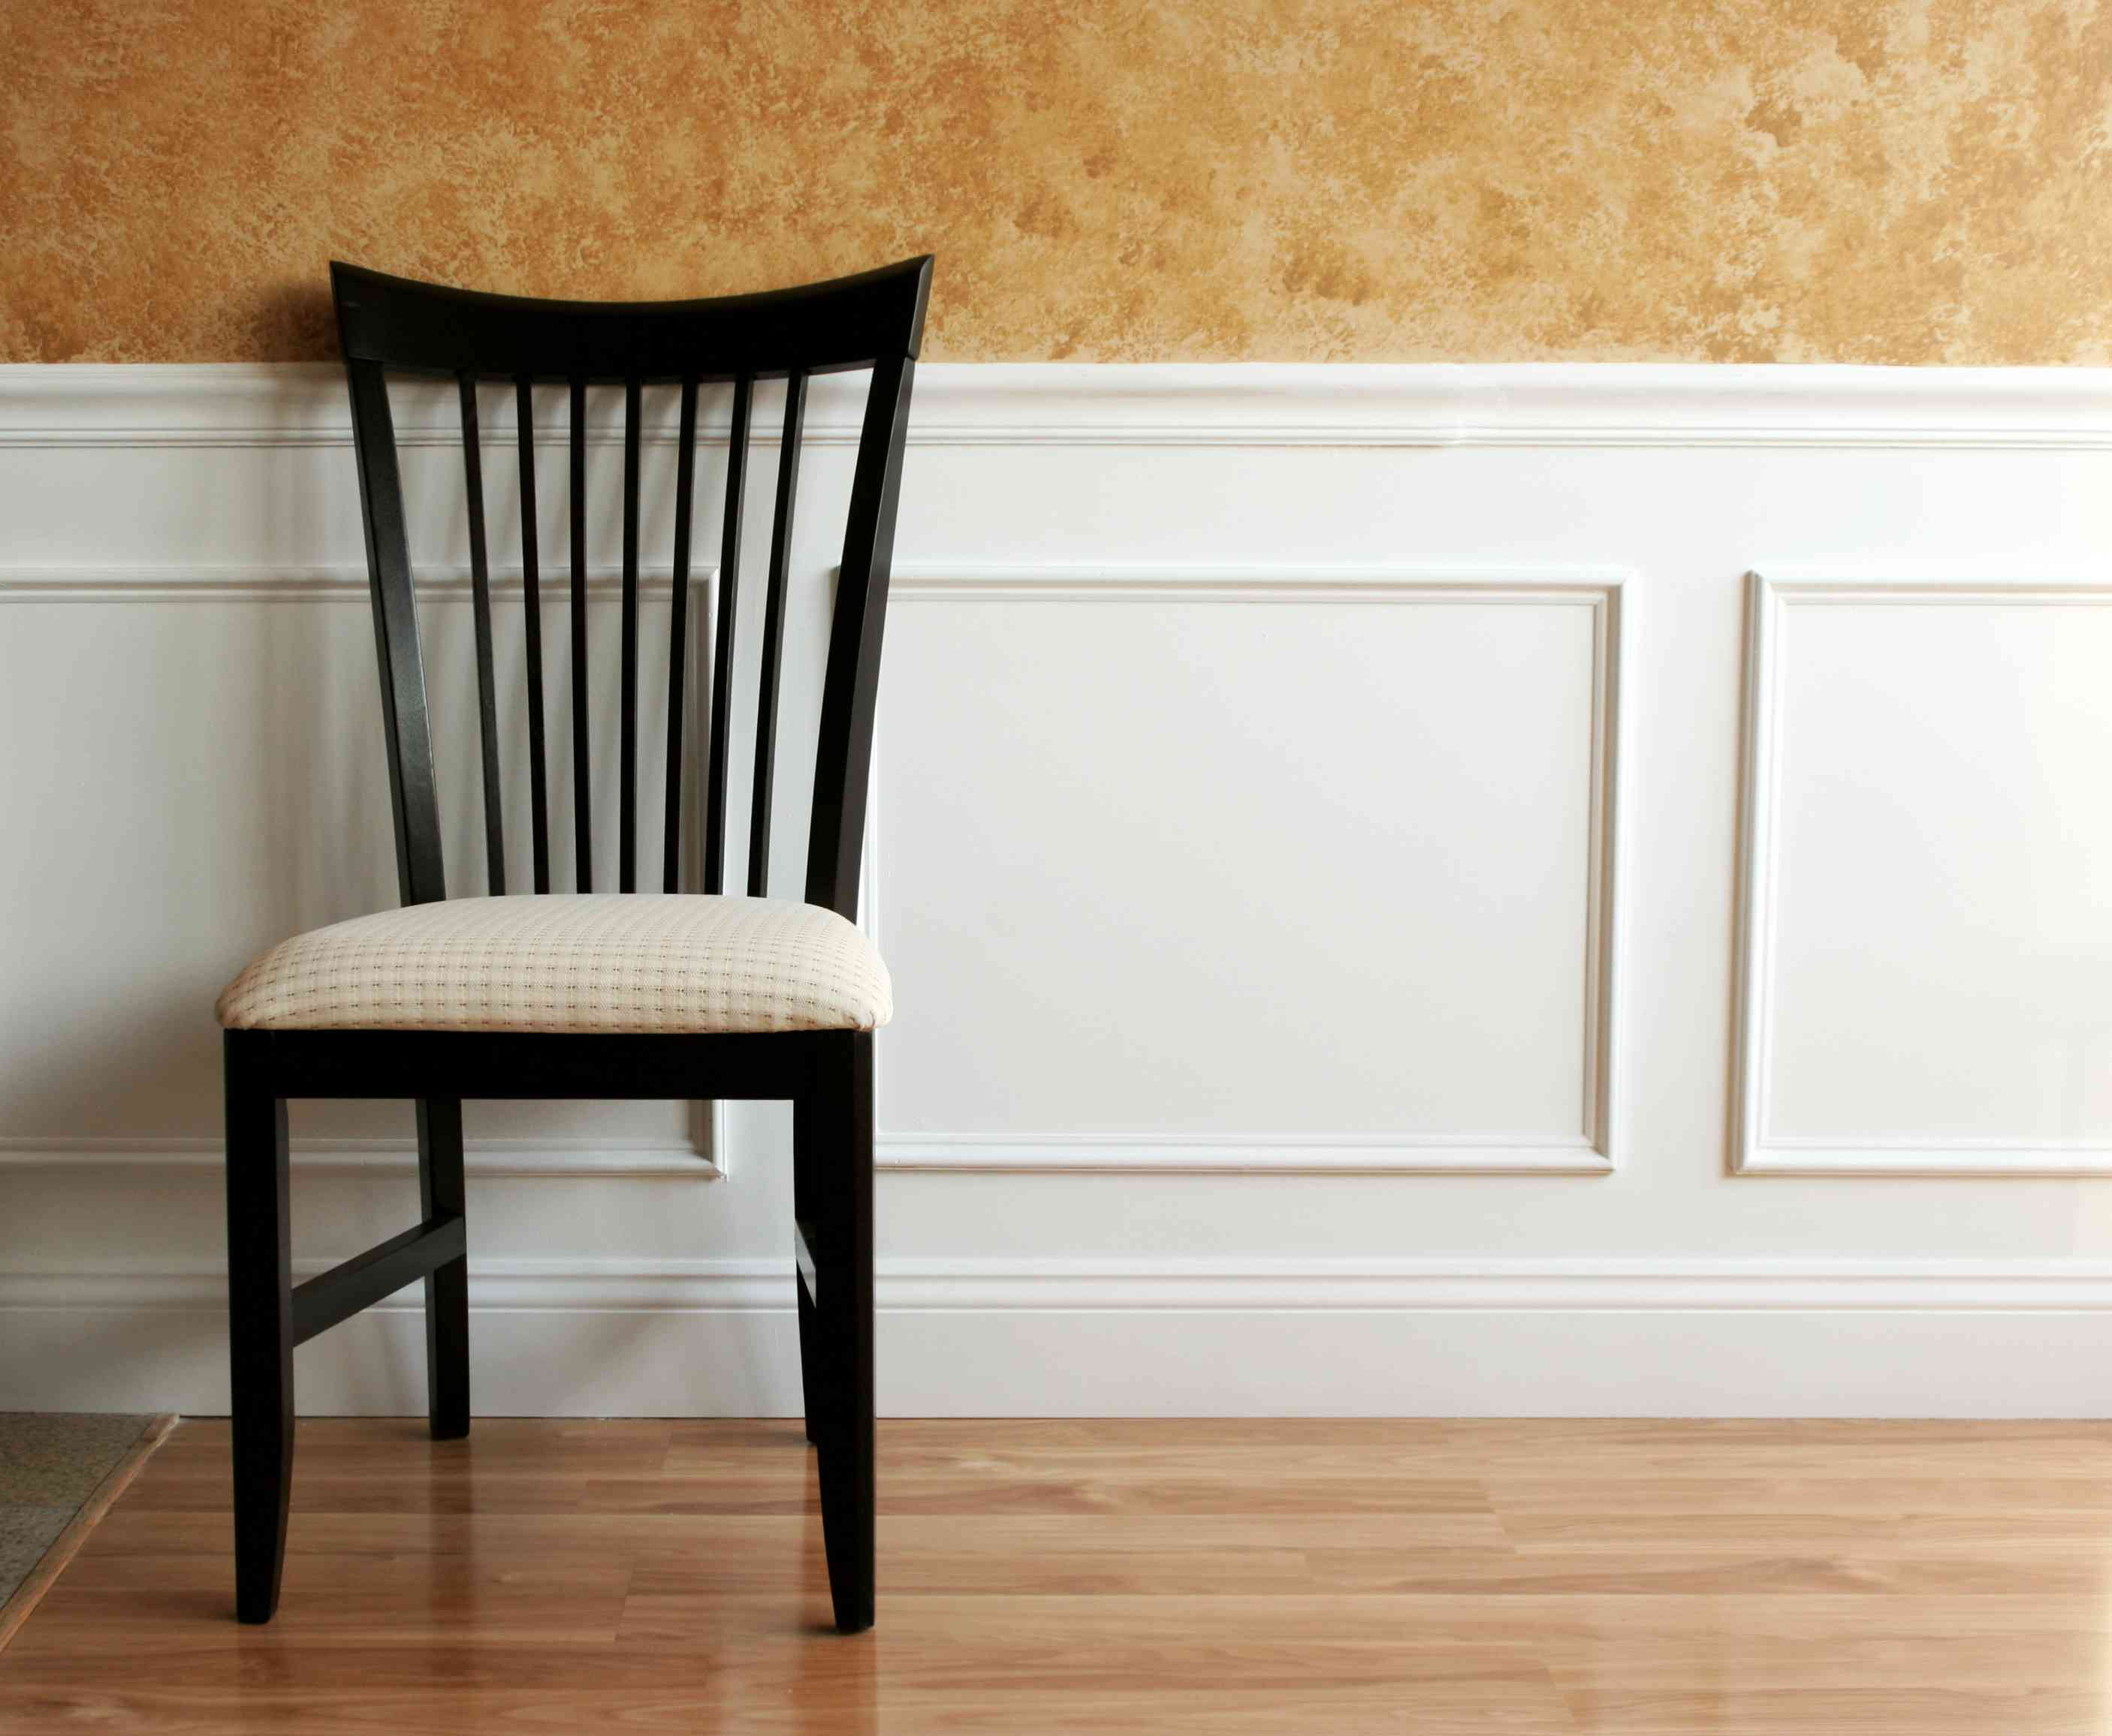 White wainscot panel with dining chair against it